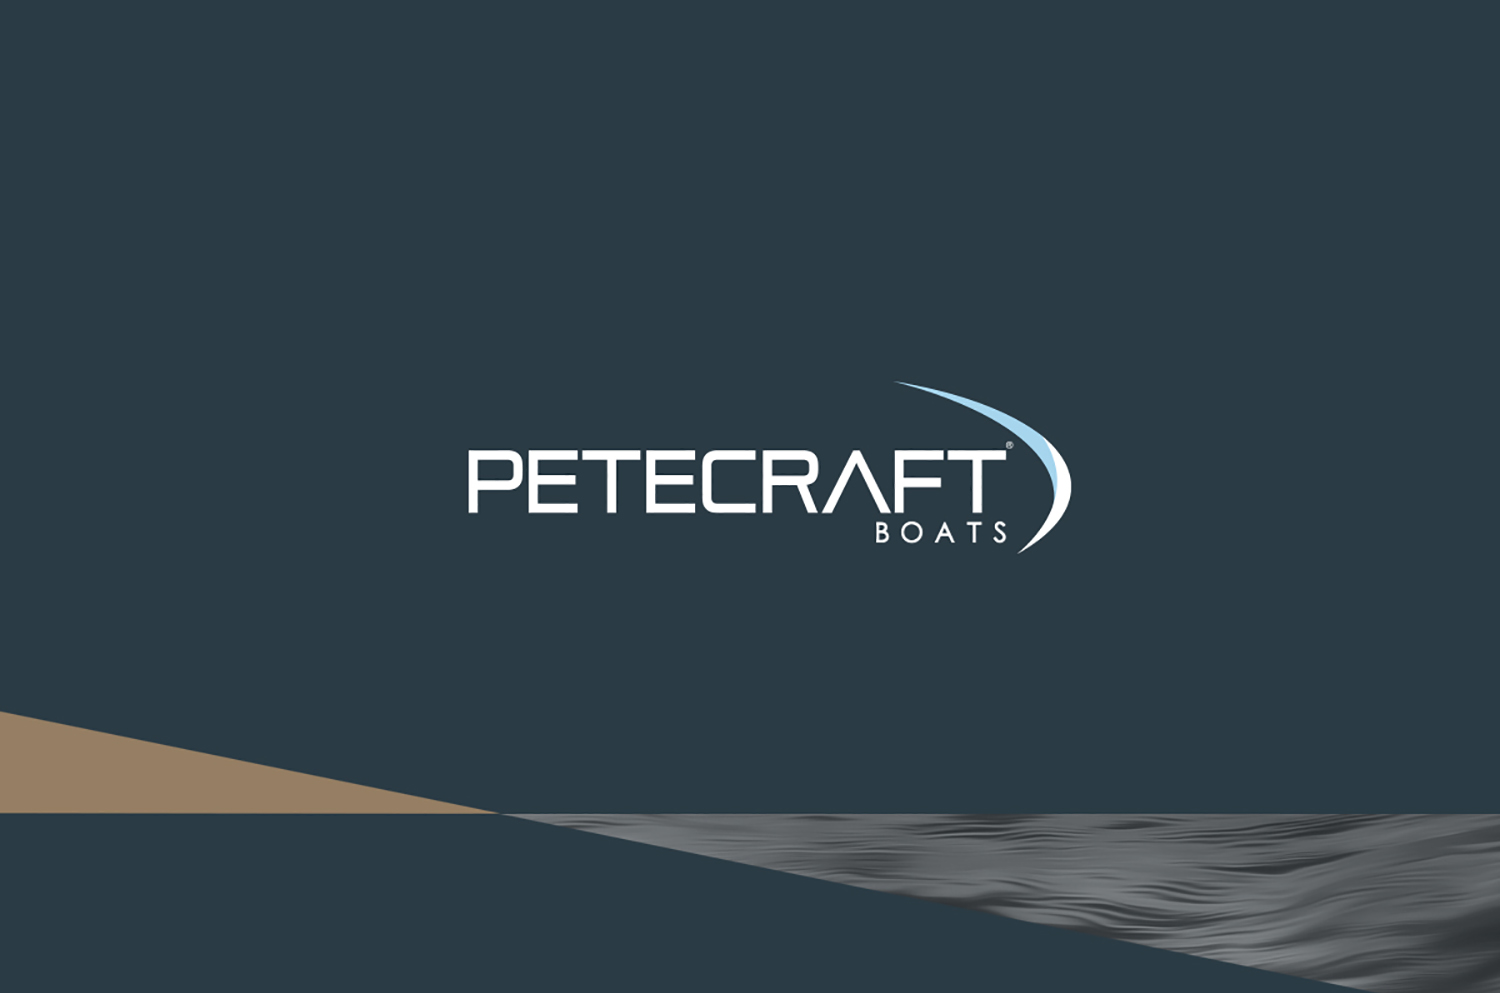 Petecraft boats logo